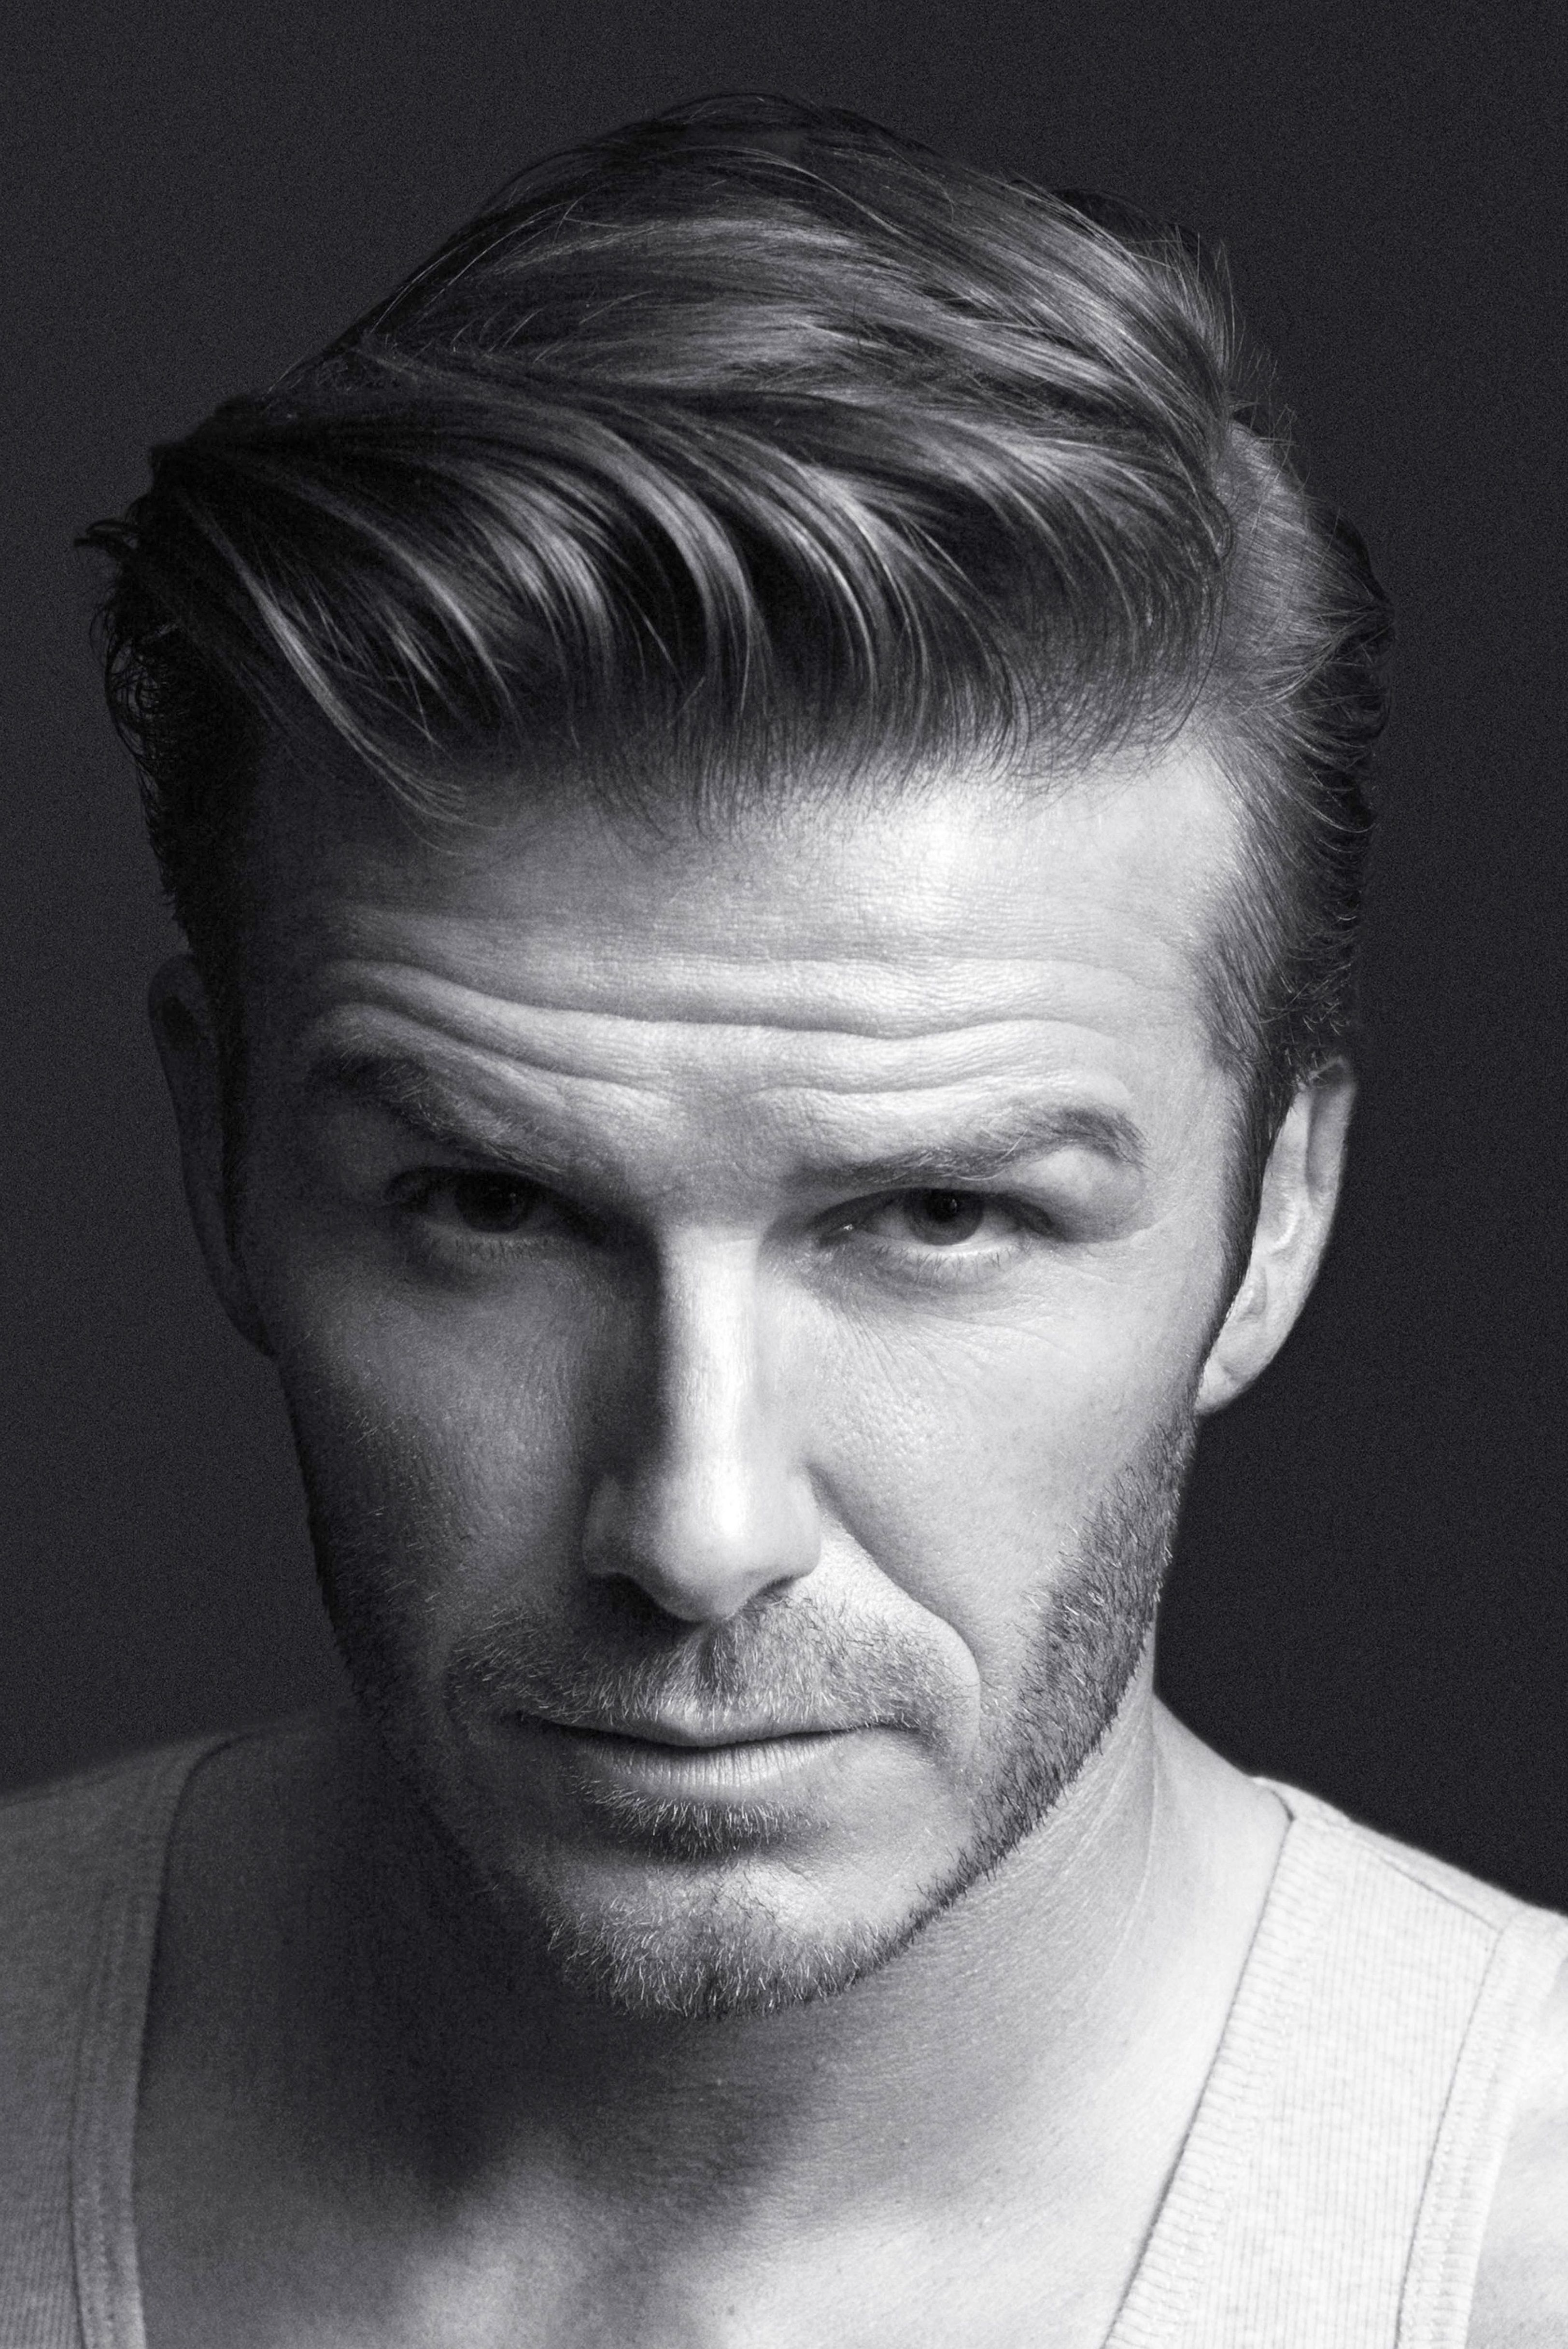 Mens haircuts straight hair david beckham  menus hair inspiration  pinterest  david beckham